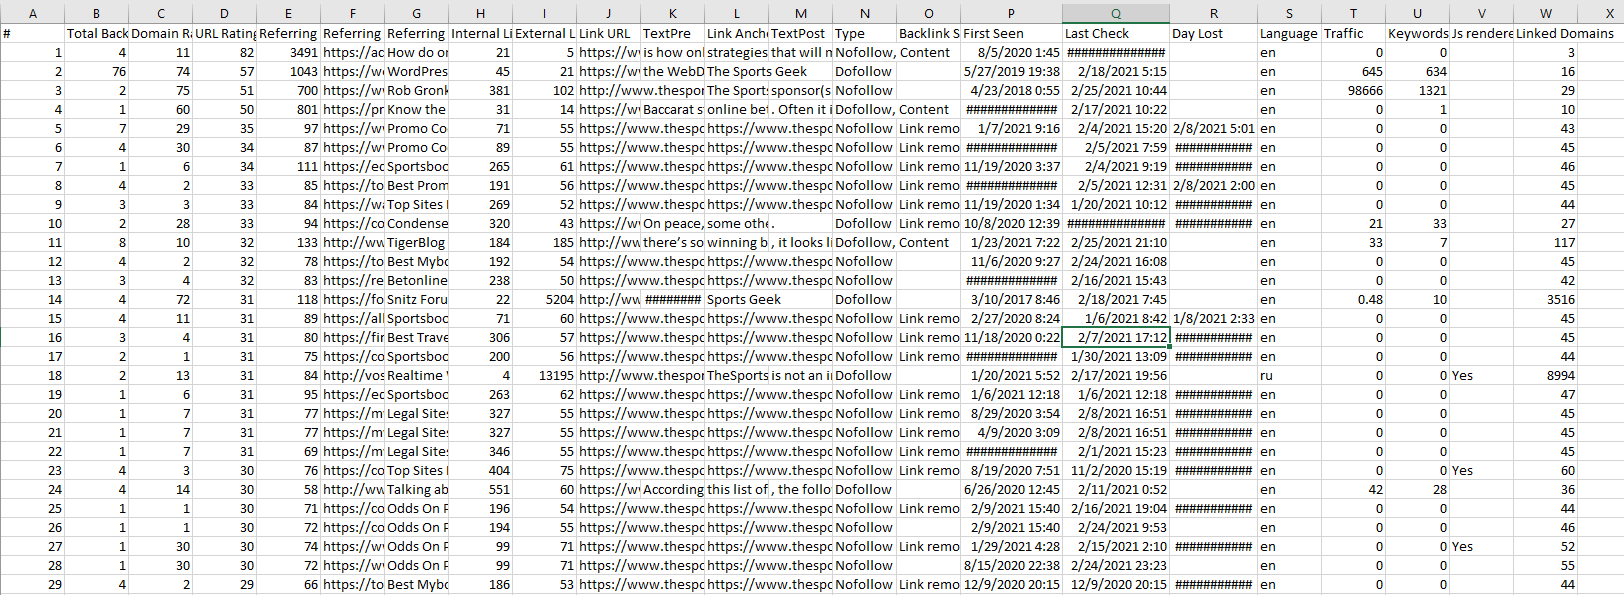 Exported CSV of Top Linked Sites